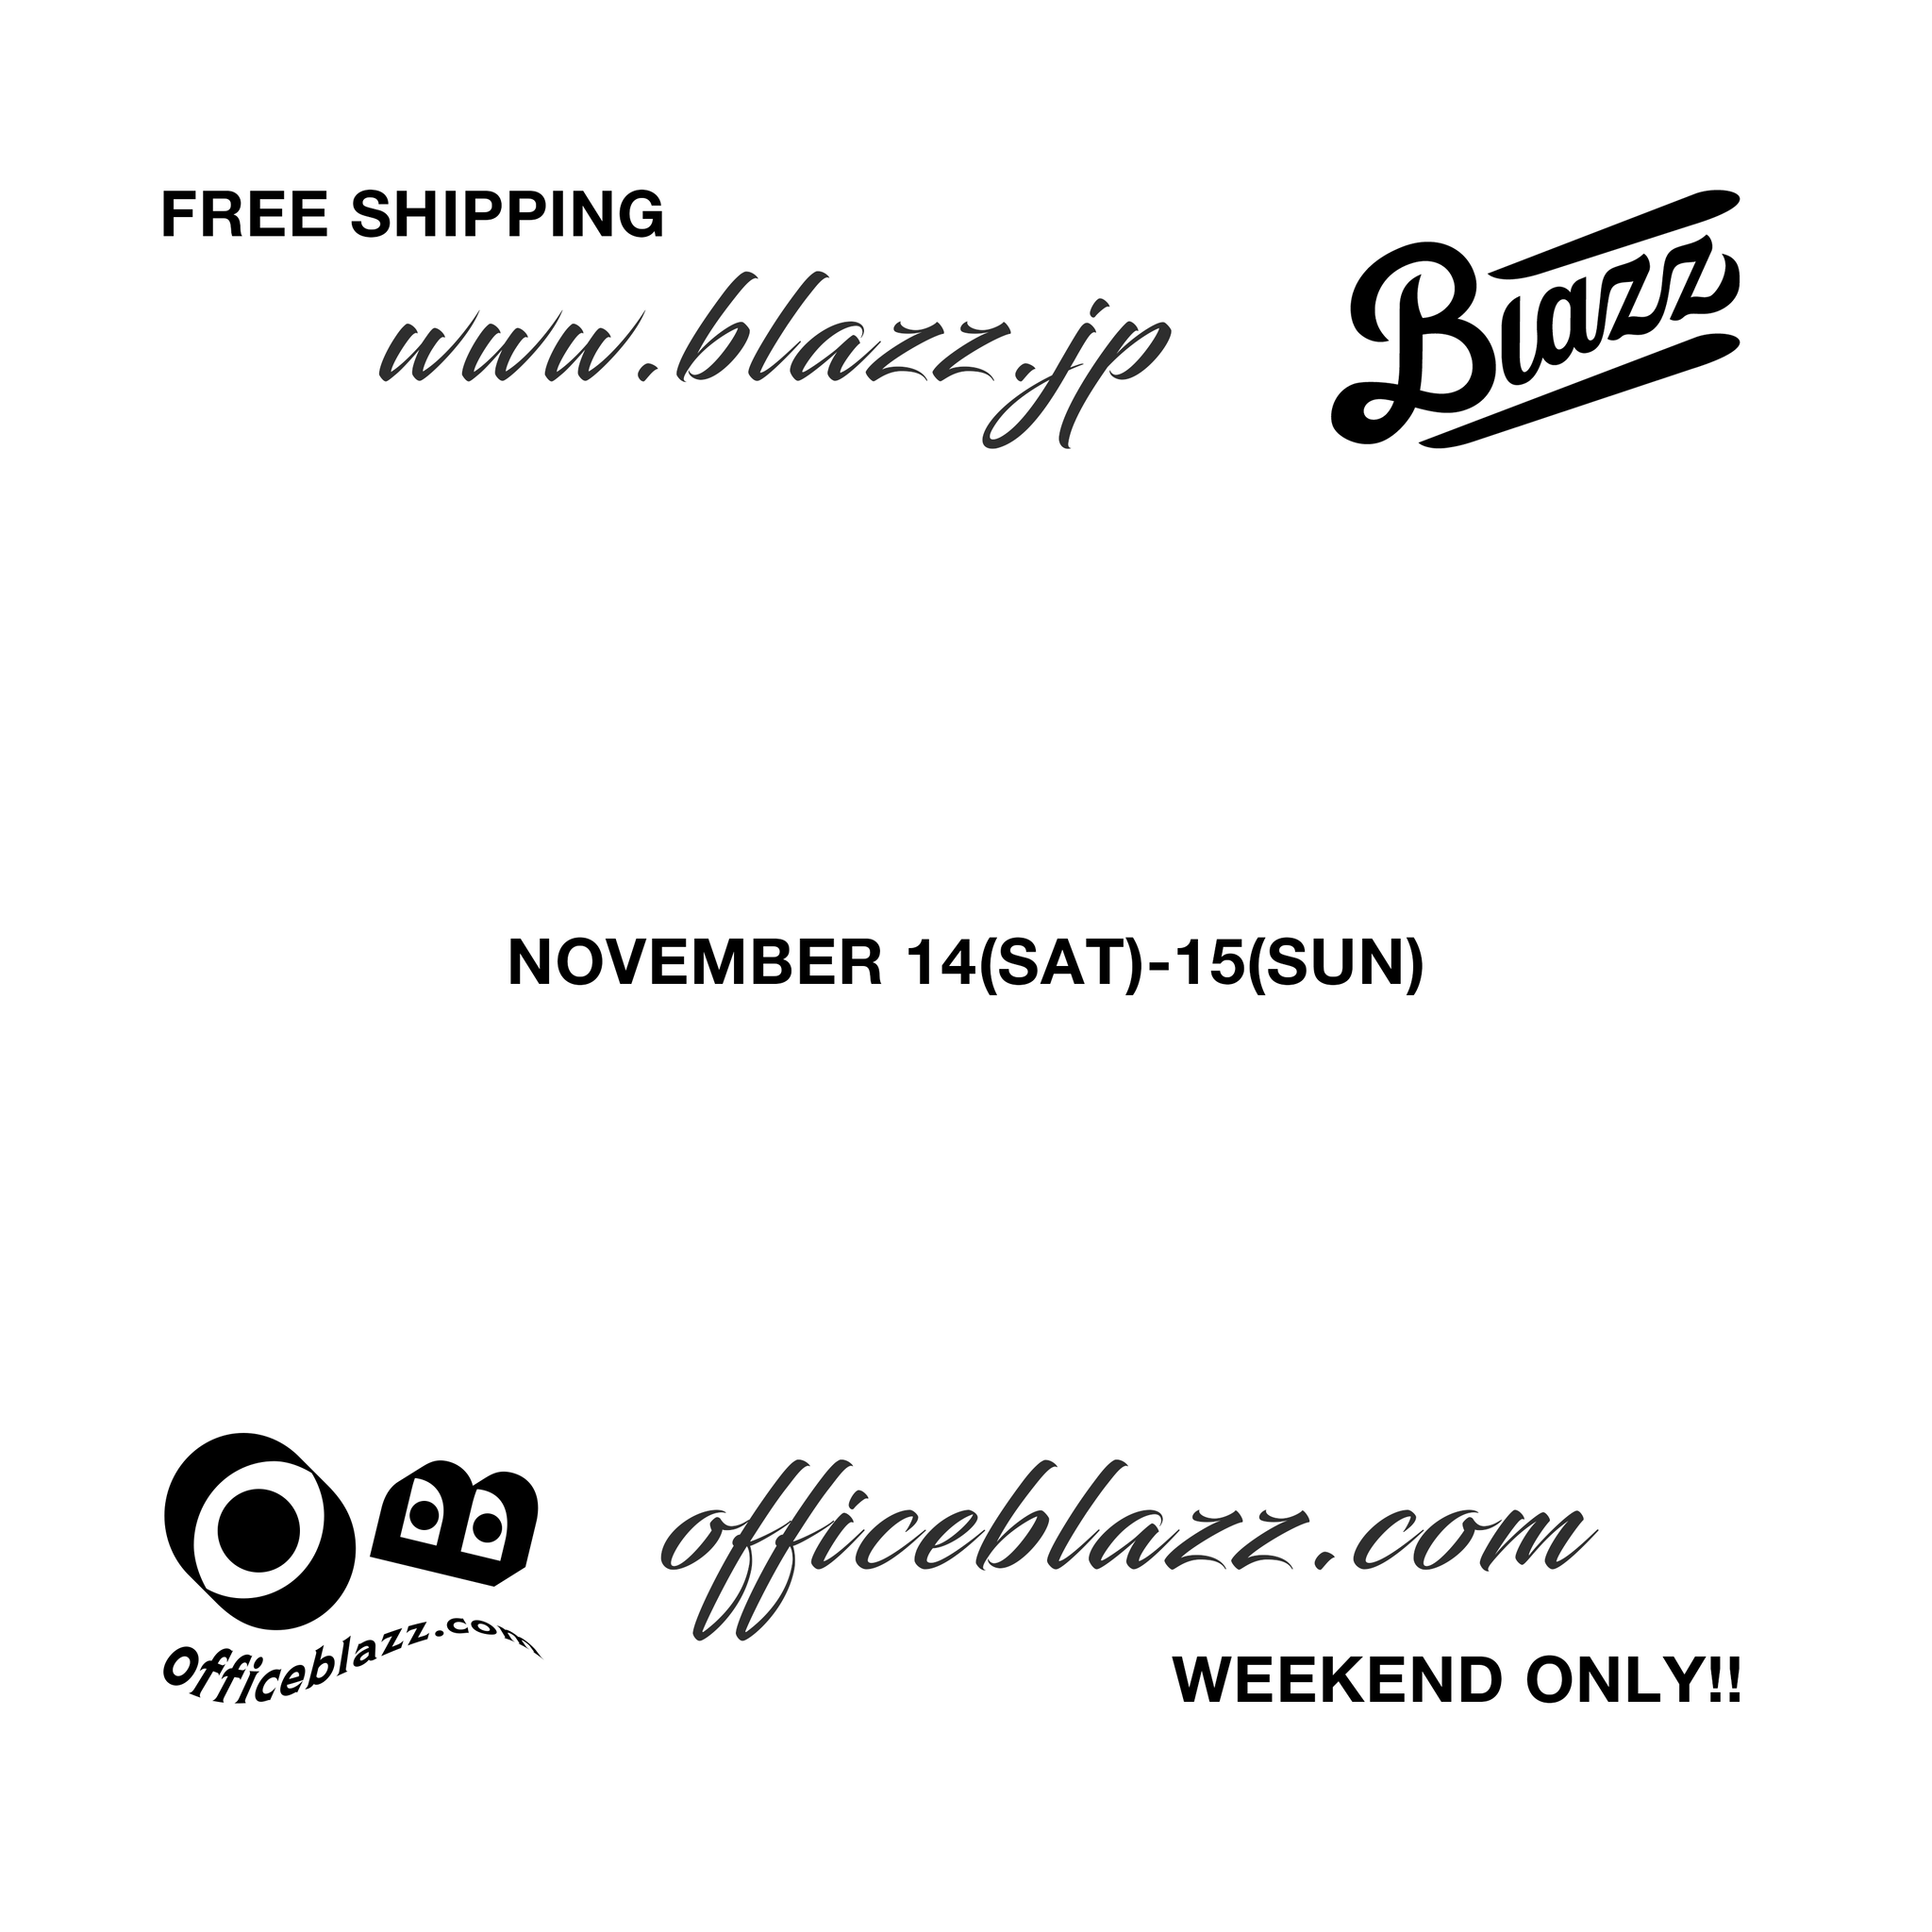 WEEKEND ONLY FREESHIPPING PROMOTION NOW!!